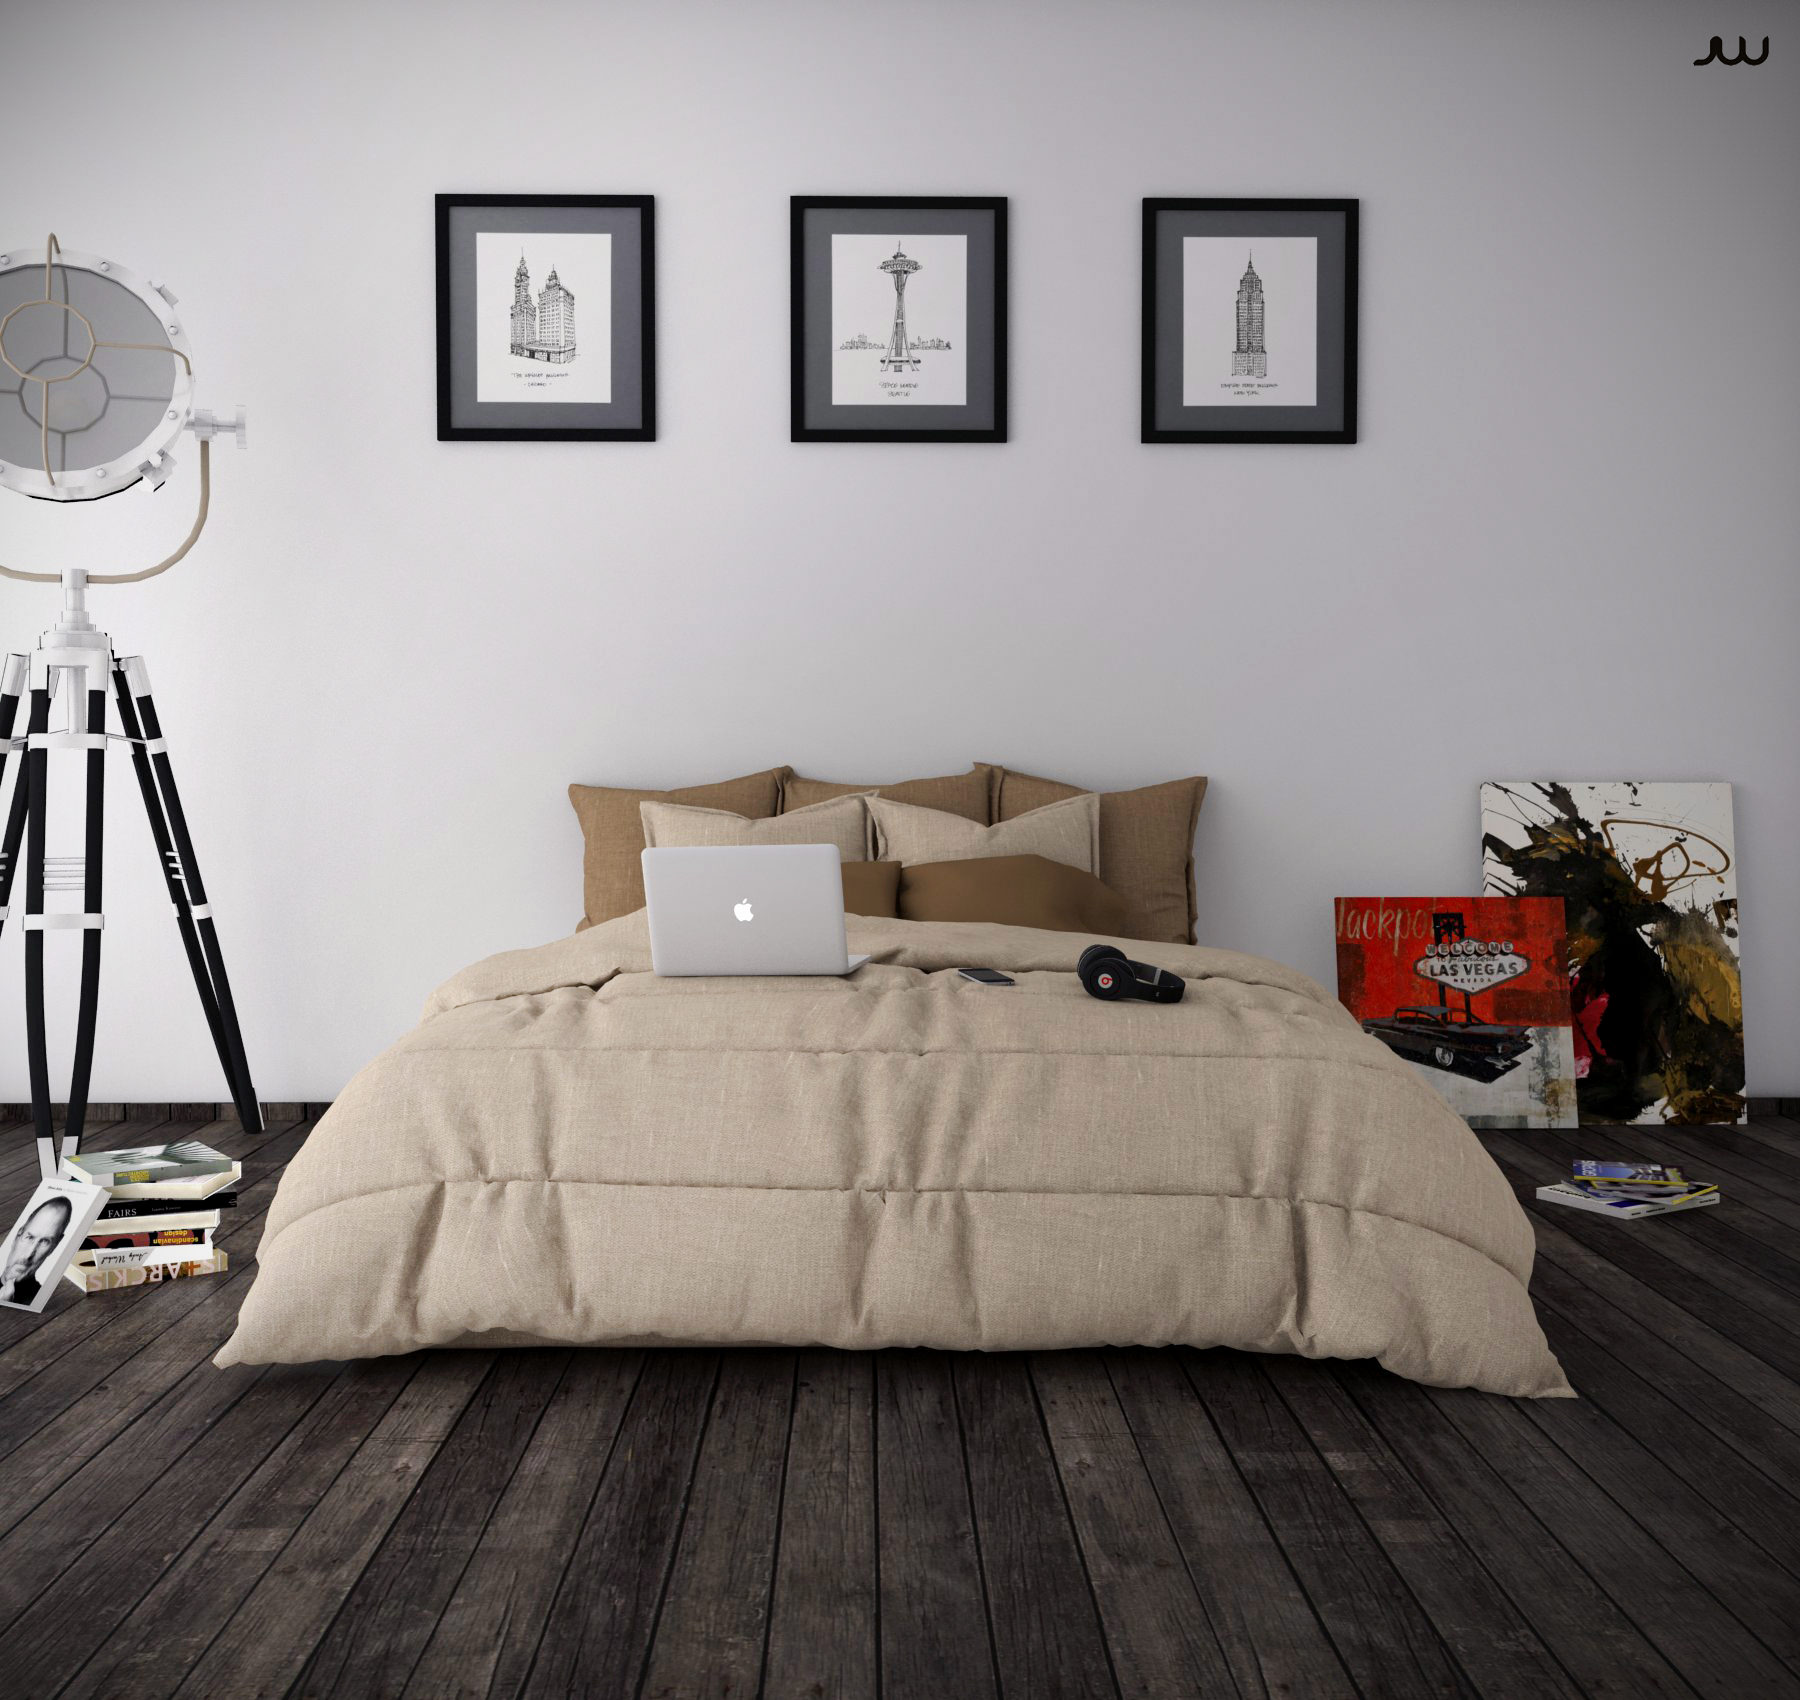 Model Bedroom bedroom minimalist free 3d model skp